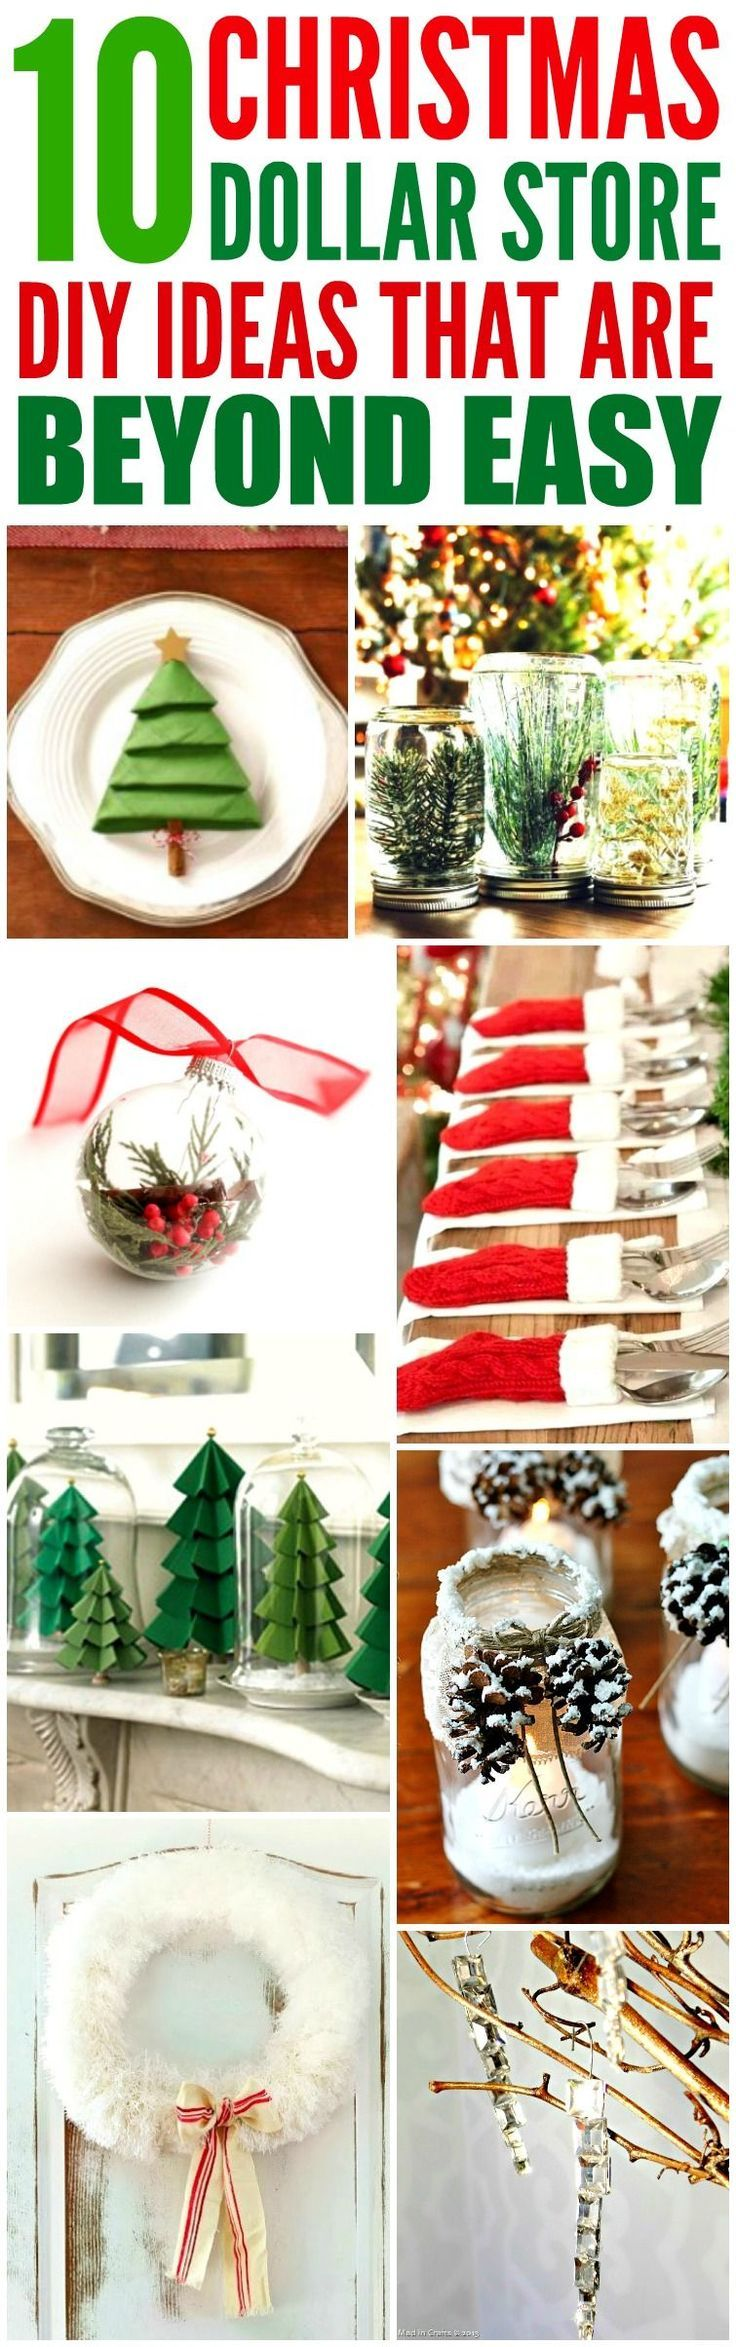 10 Dollar Shop DIY Christmas Decorations Easy – # 10DollarShop #the #DIYChristmas Decorations #dollar #simple #sind